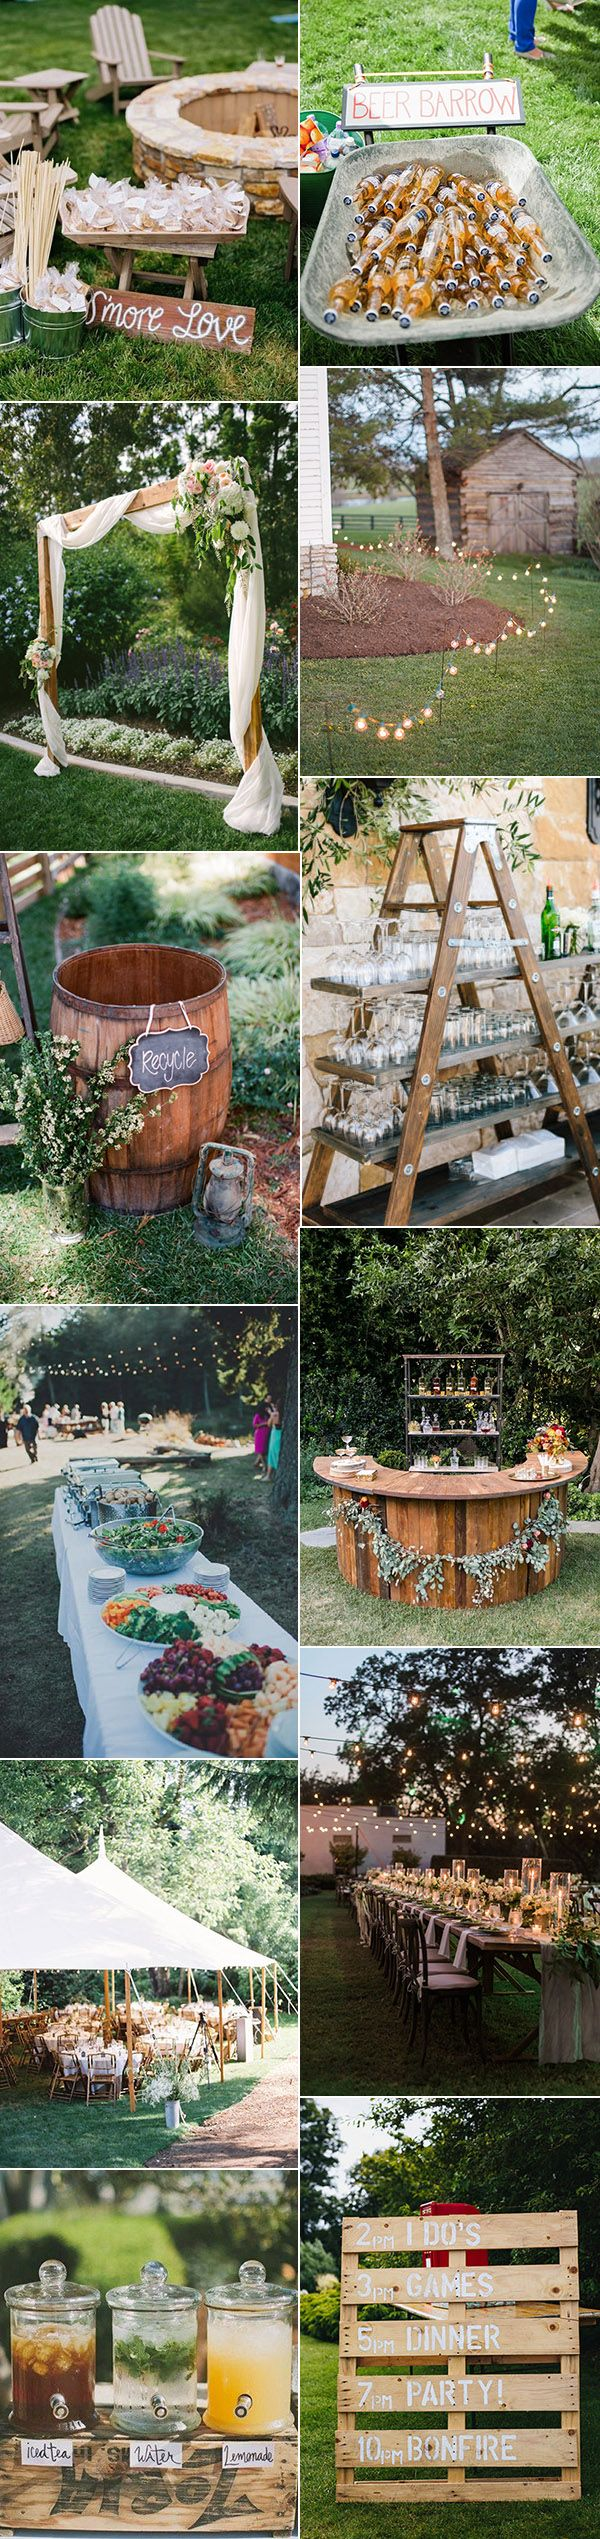 20 great backyard wedding ideas that inspire rustic backyard